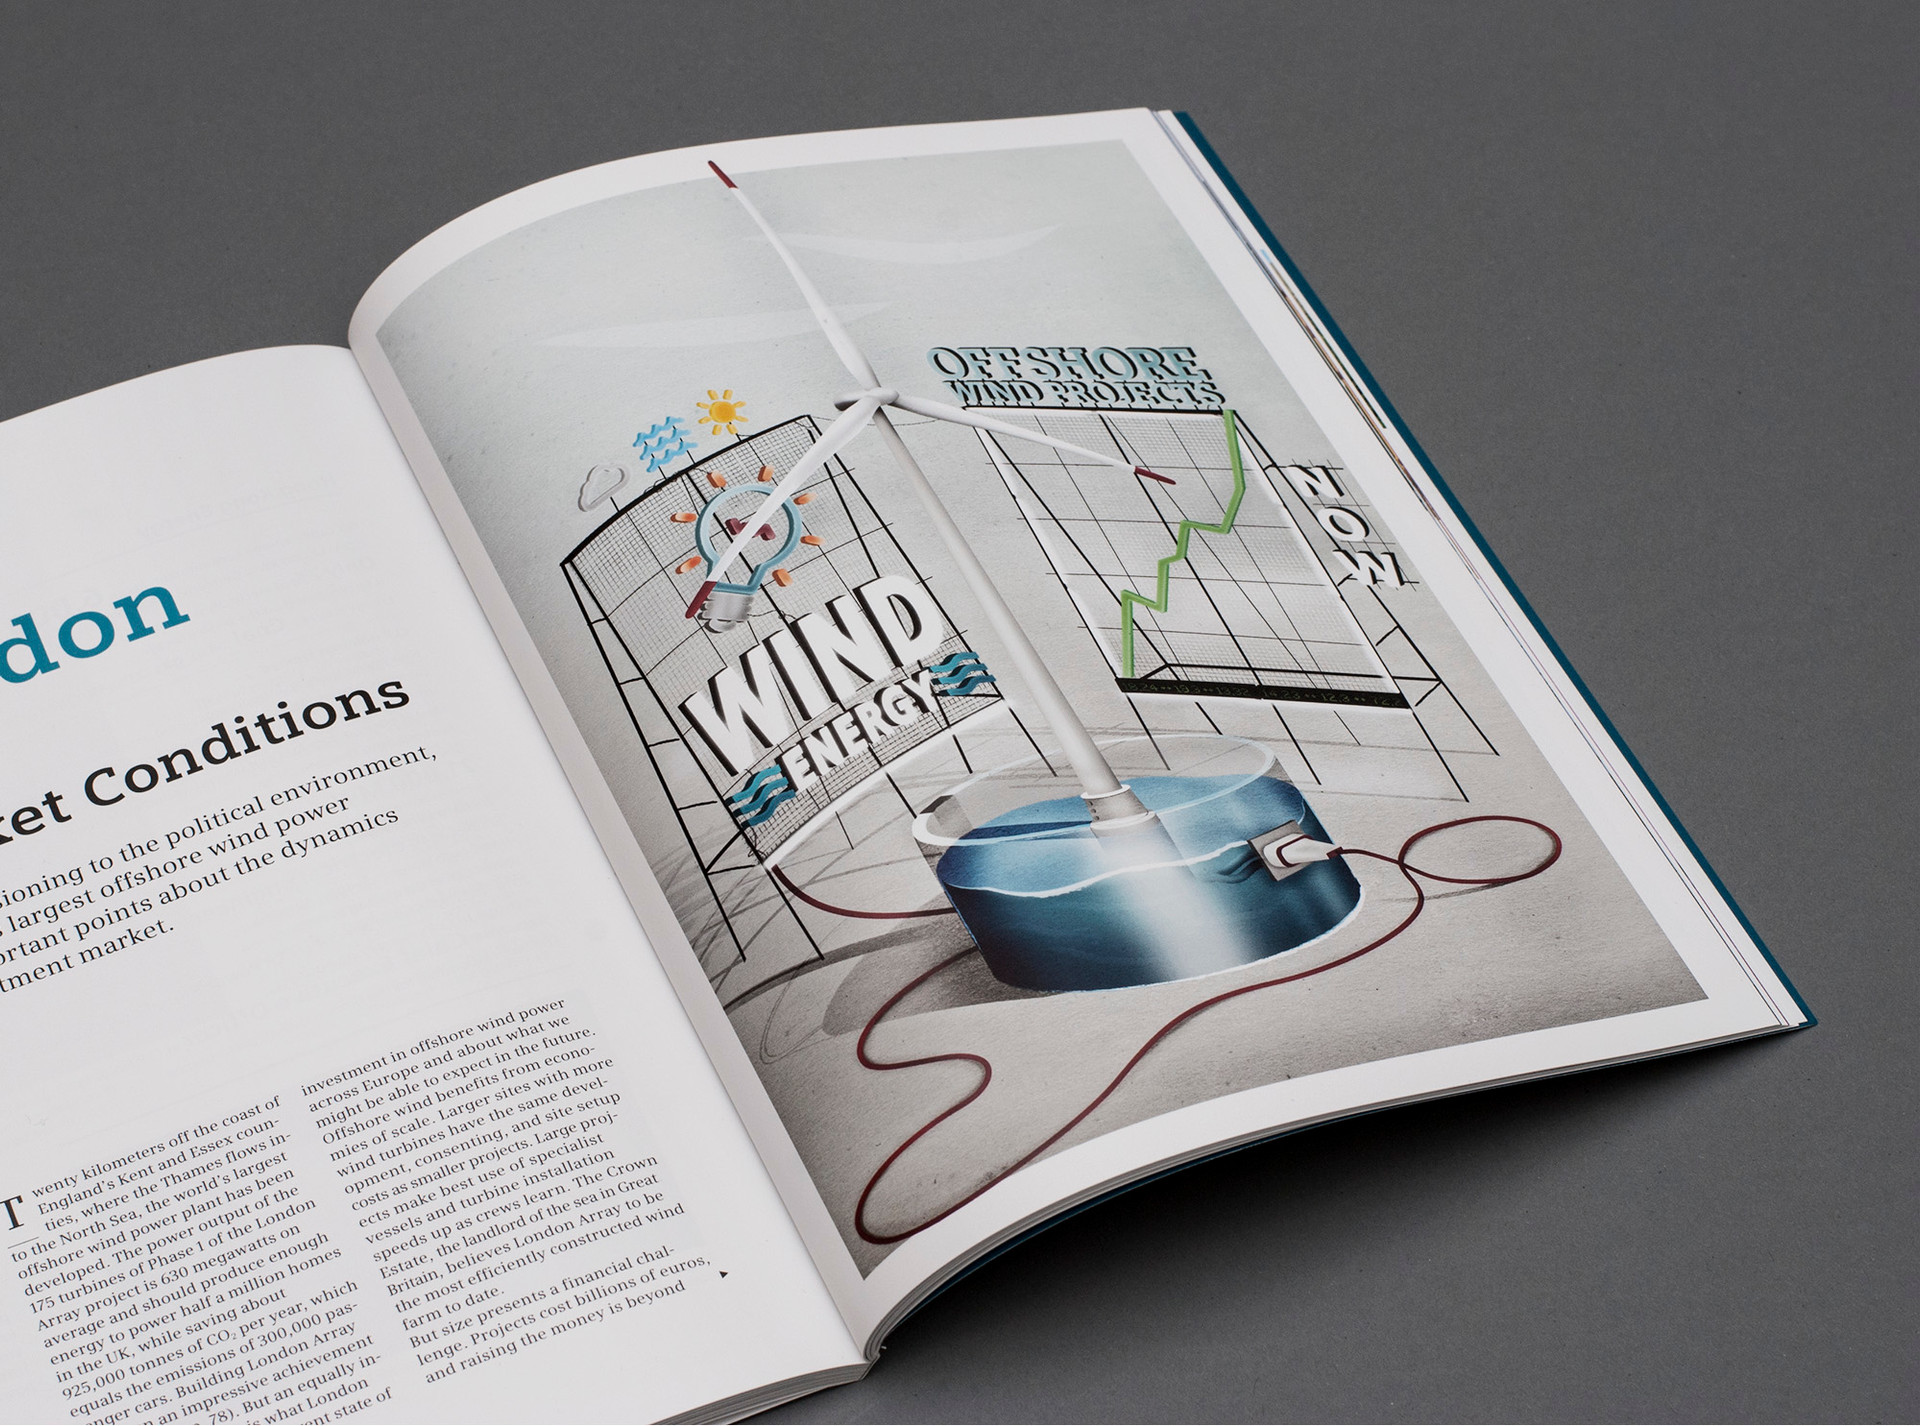 Siemens-Illustration-Studio-Christoph-Oh